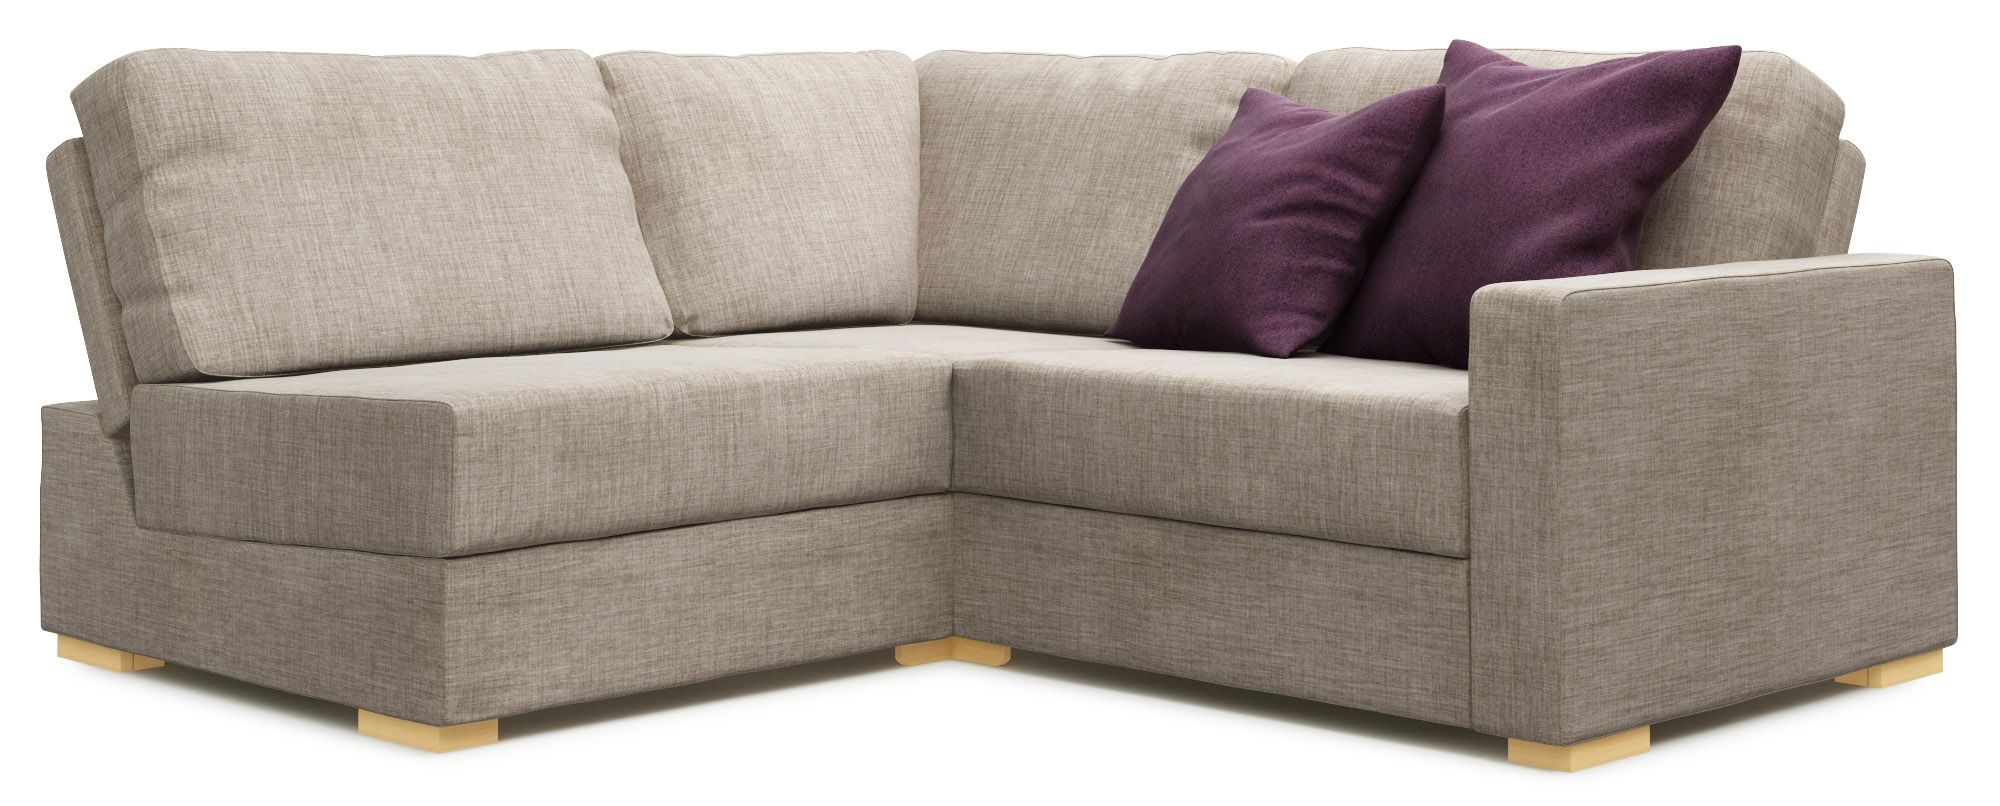 emerald corner sofa bed best place to buy armless uk arm designs